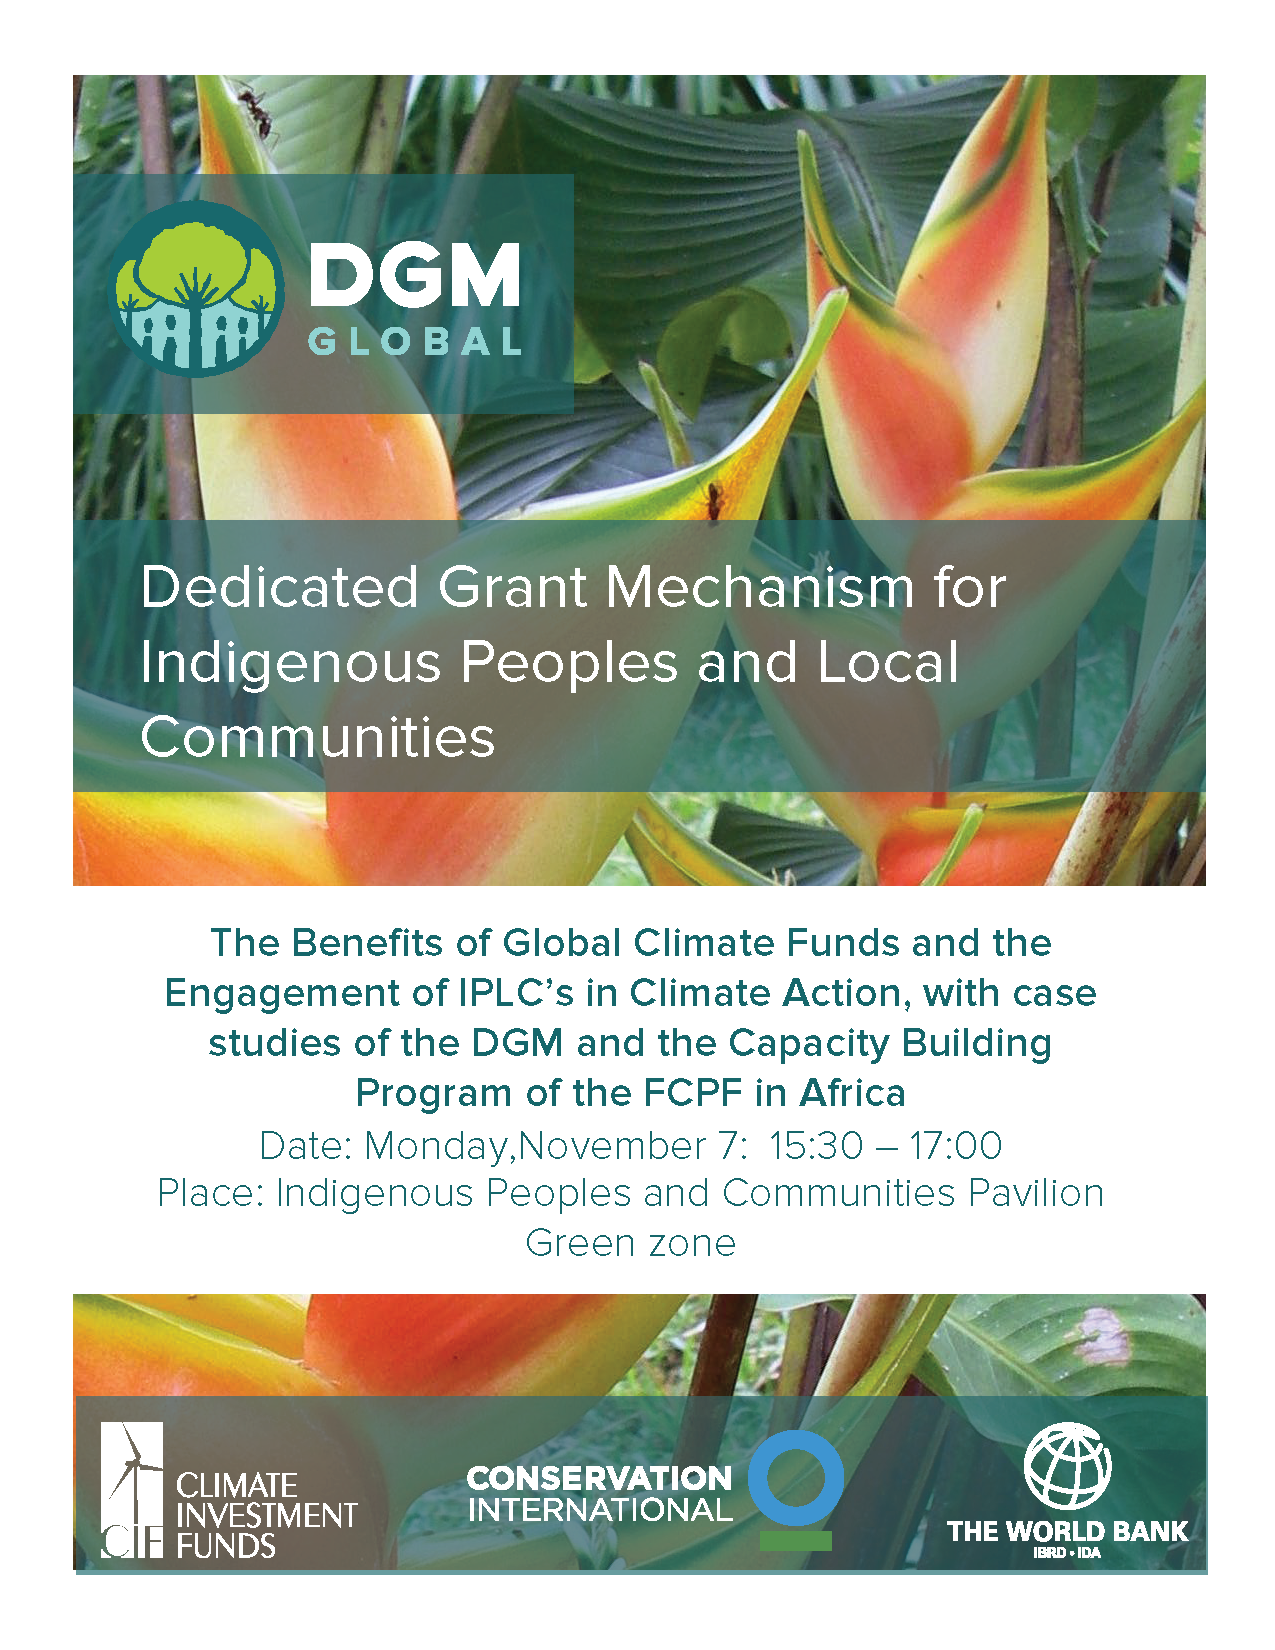 DGM-MPIDO side event 11.7.16.png